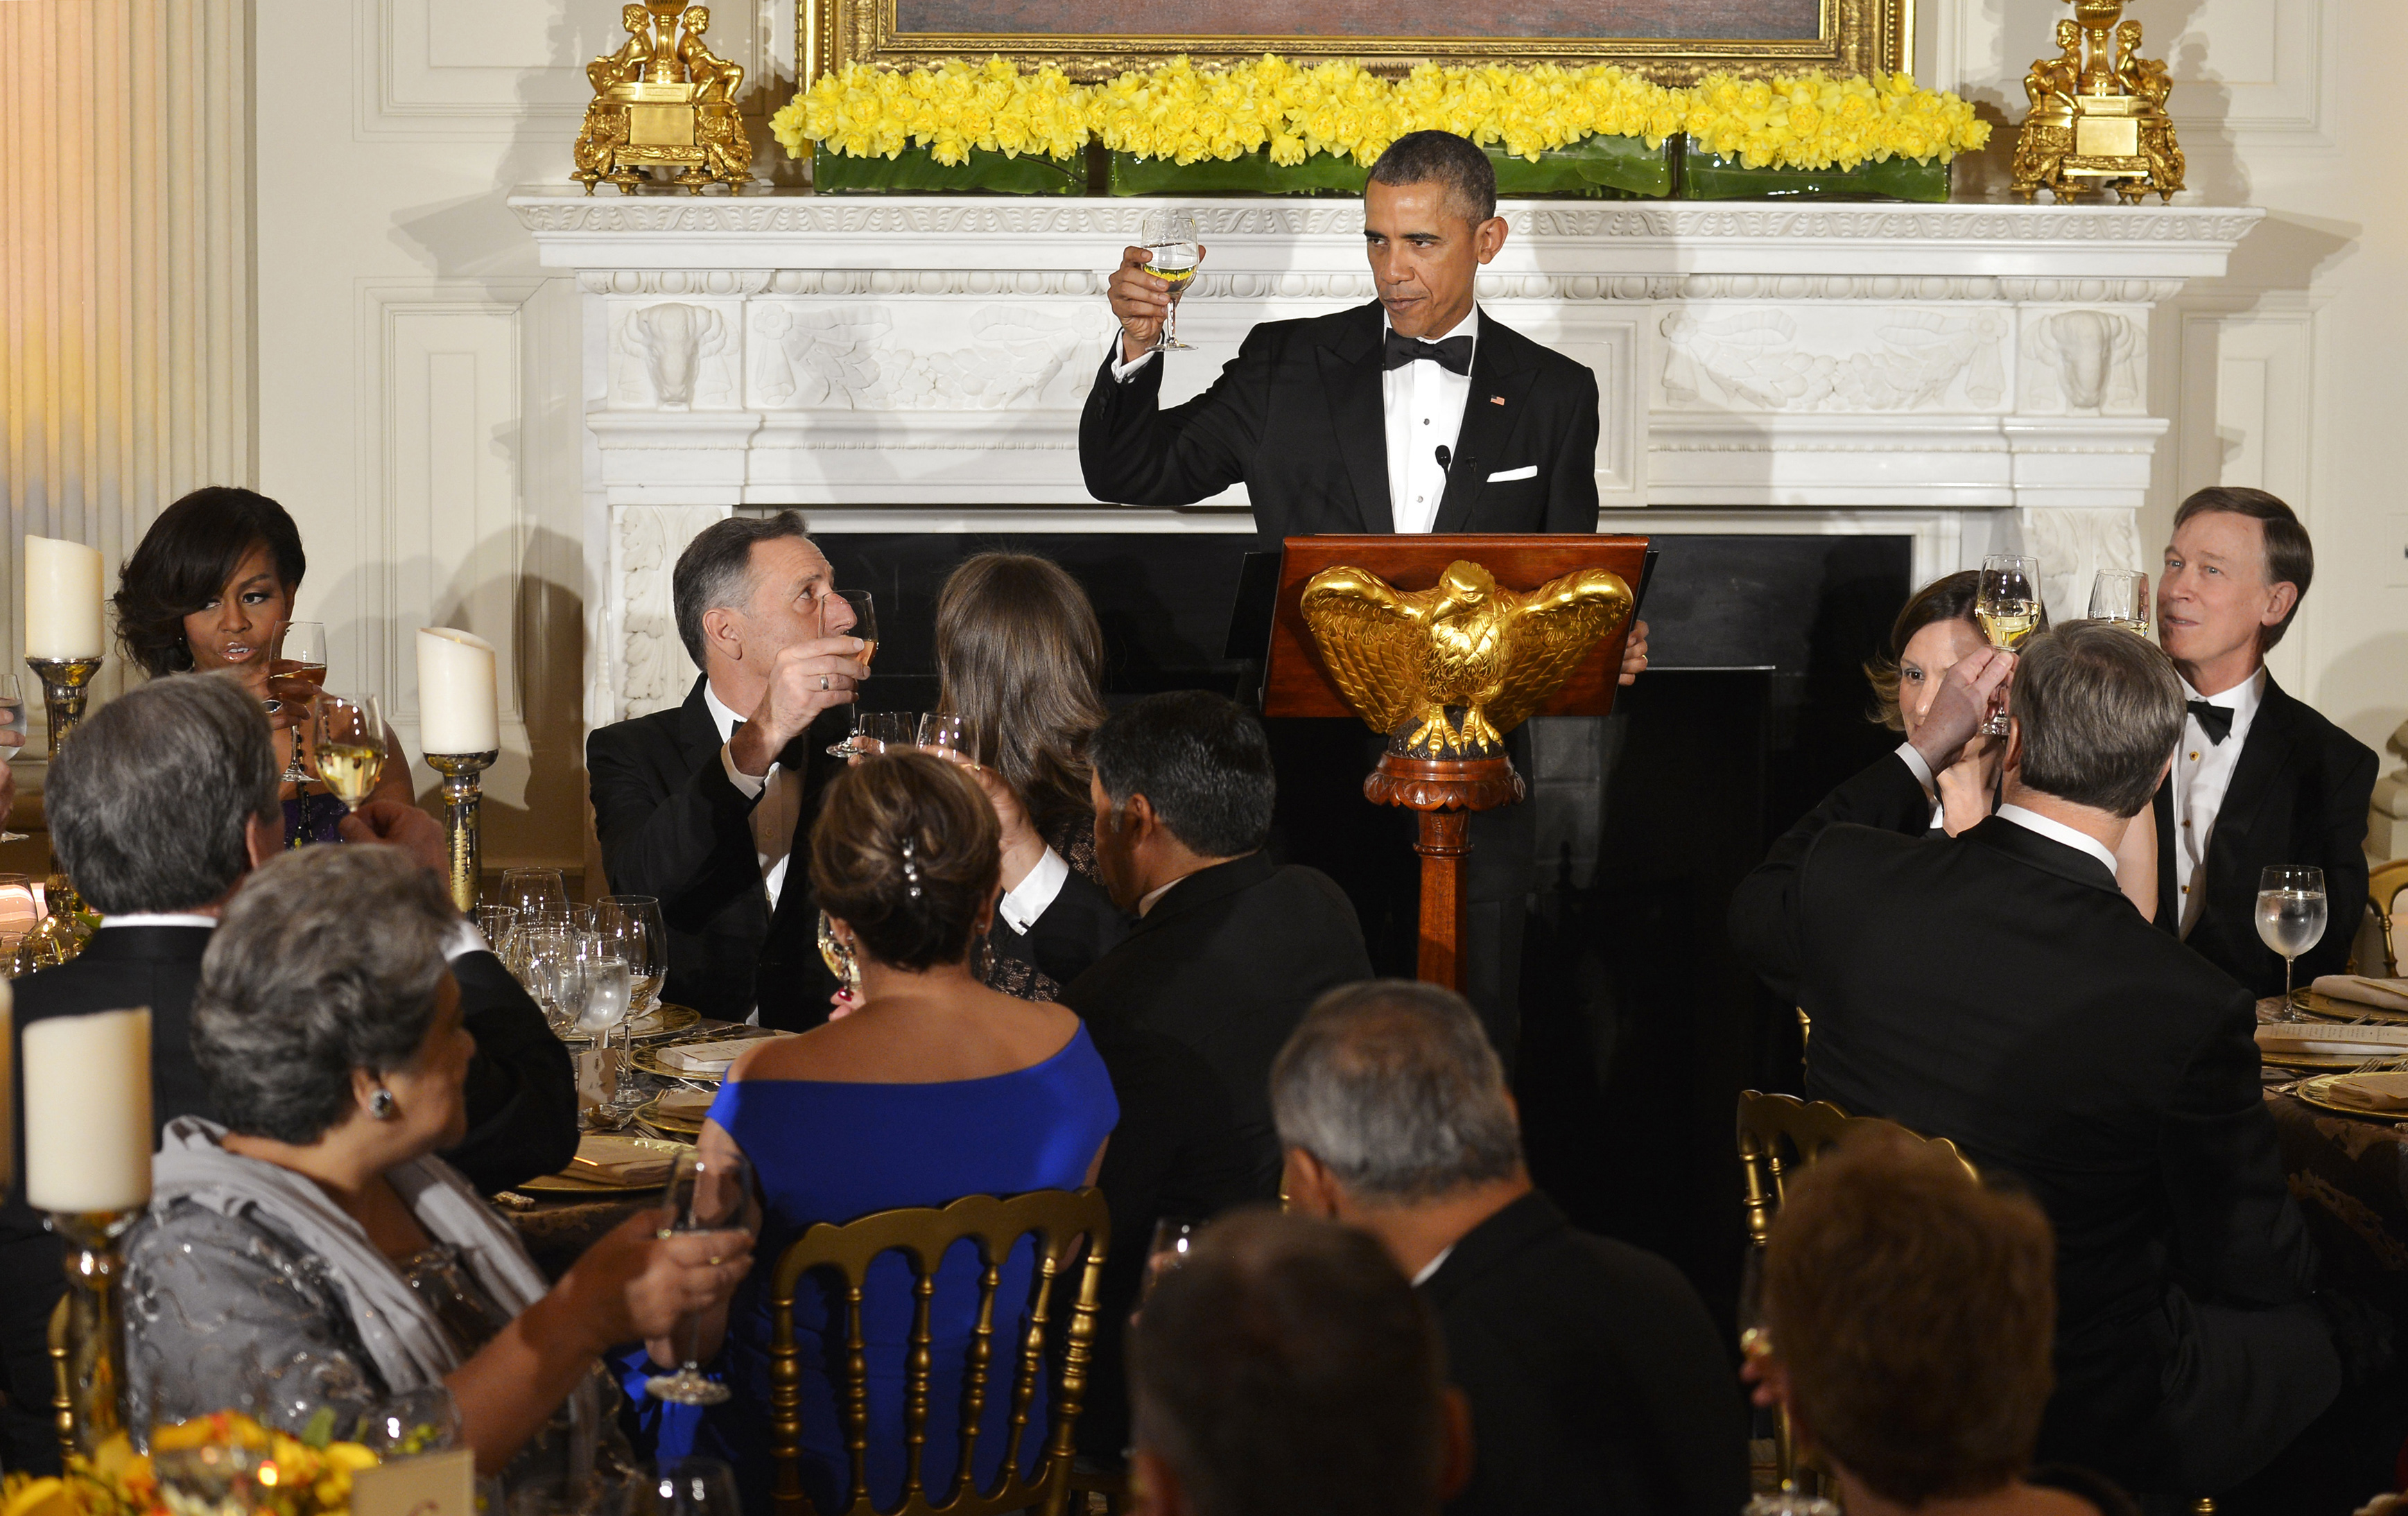 U.S. President Barack Obama, center, raises his glass to toast attendees from the National Governors Association (NGA) at a dinner in the State Dining Room of the White House in Washington, D.C., on Feb. 22, 2015